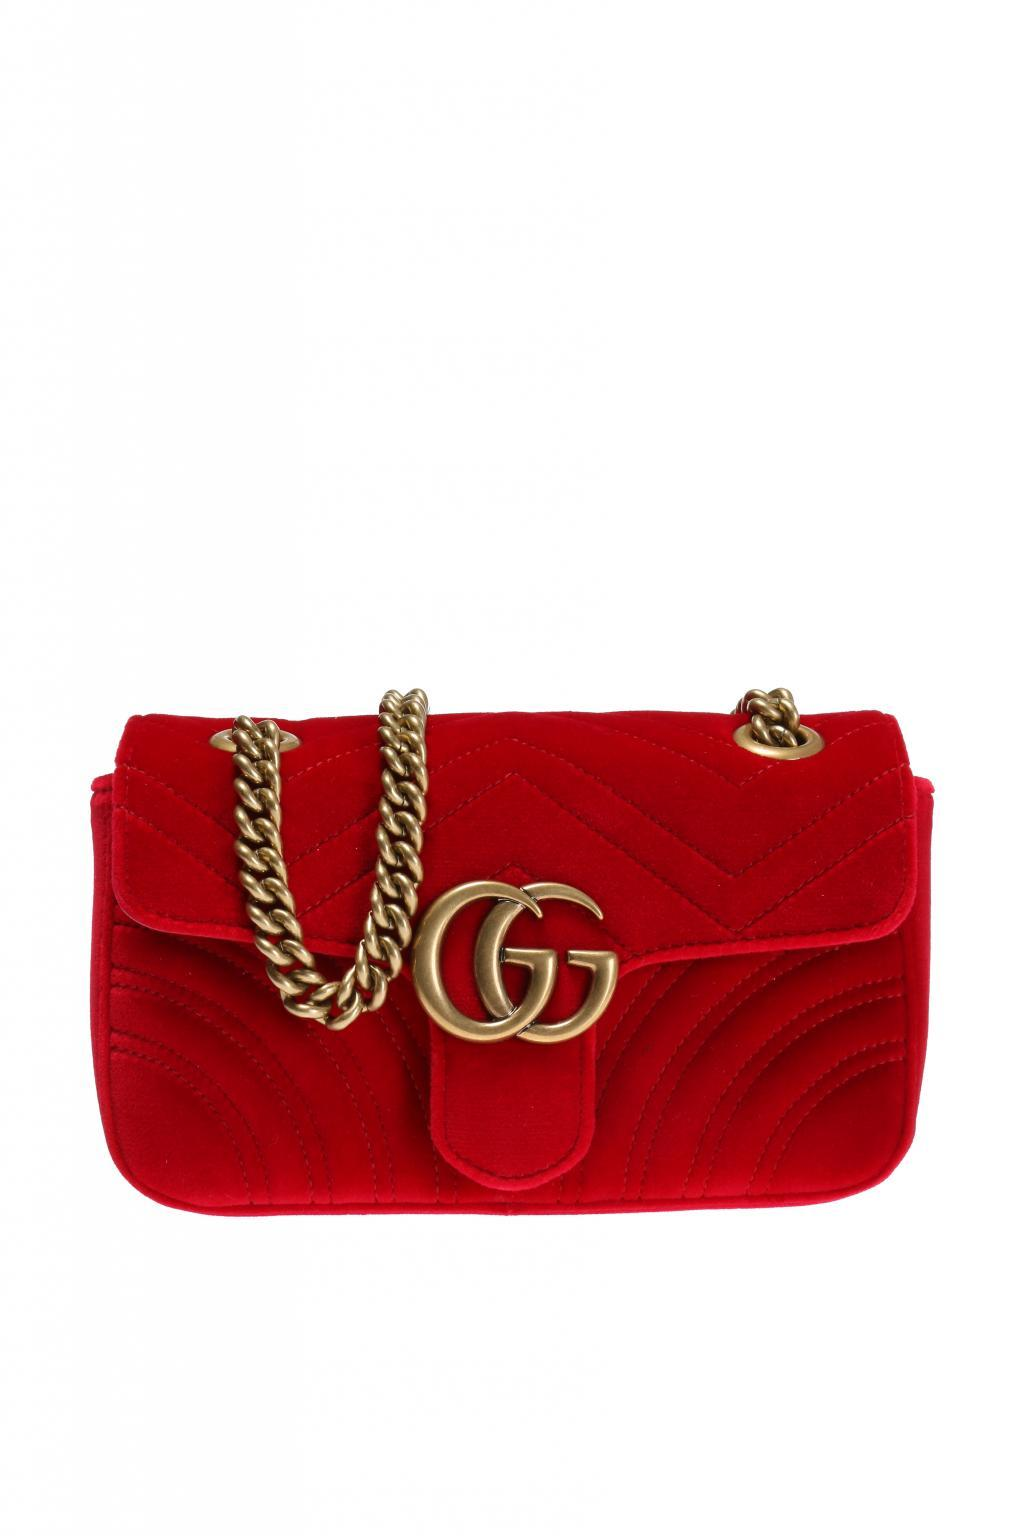 8502118c25904e Lyst - Gucci 'GG Marmont' Shoulder Bag in Red